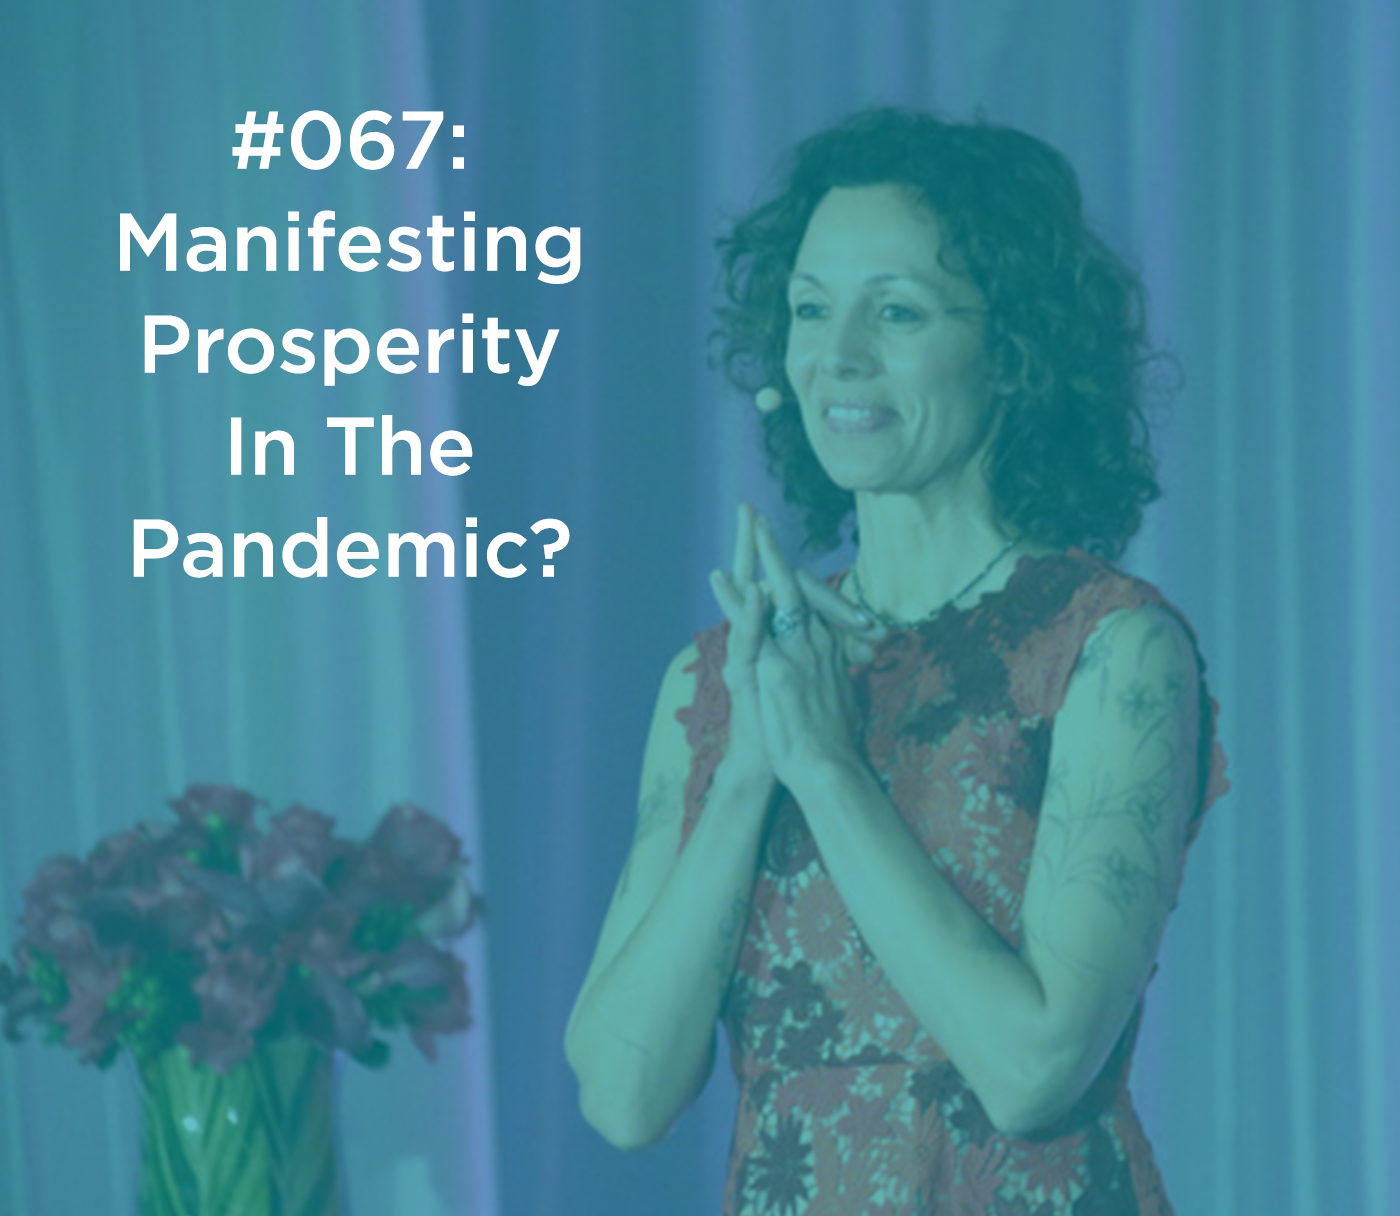 Manifesting Prosperity In The Pandemic